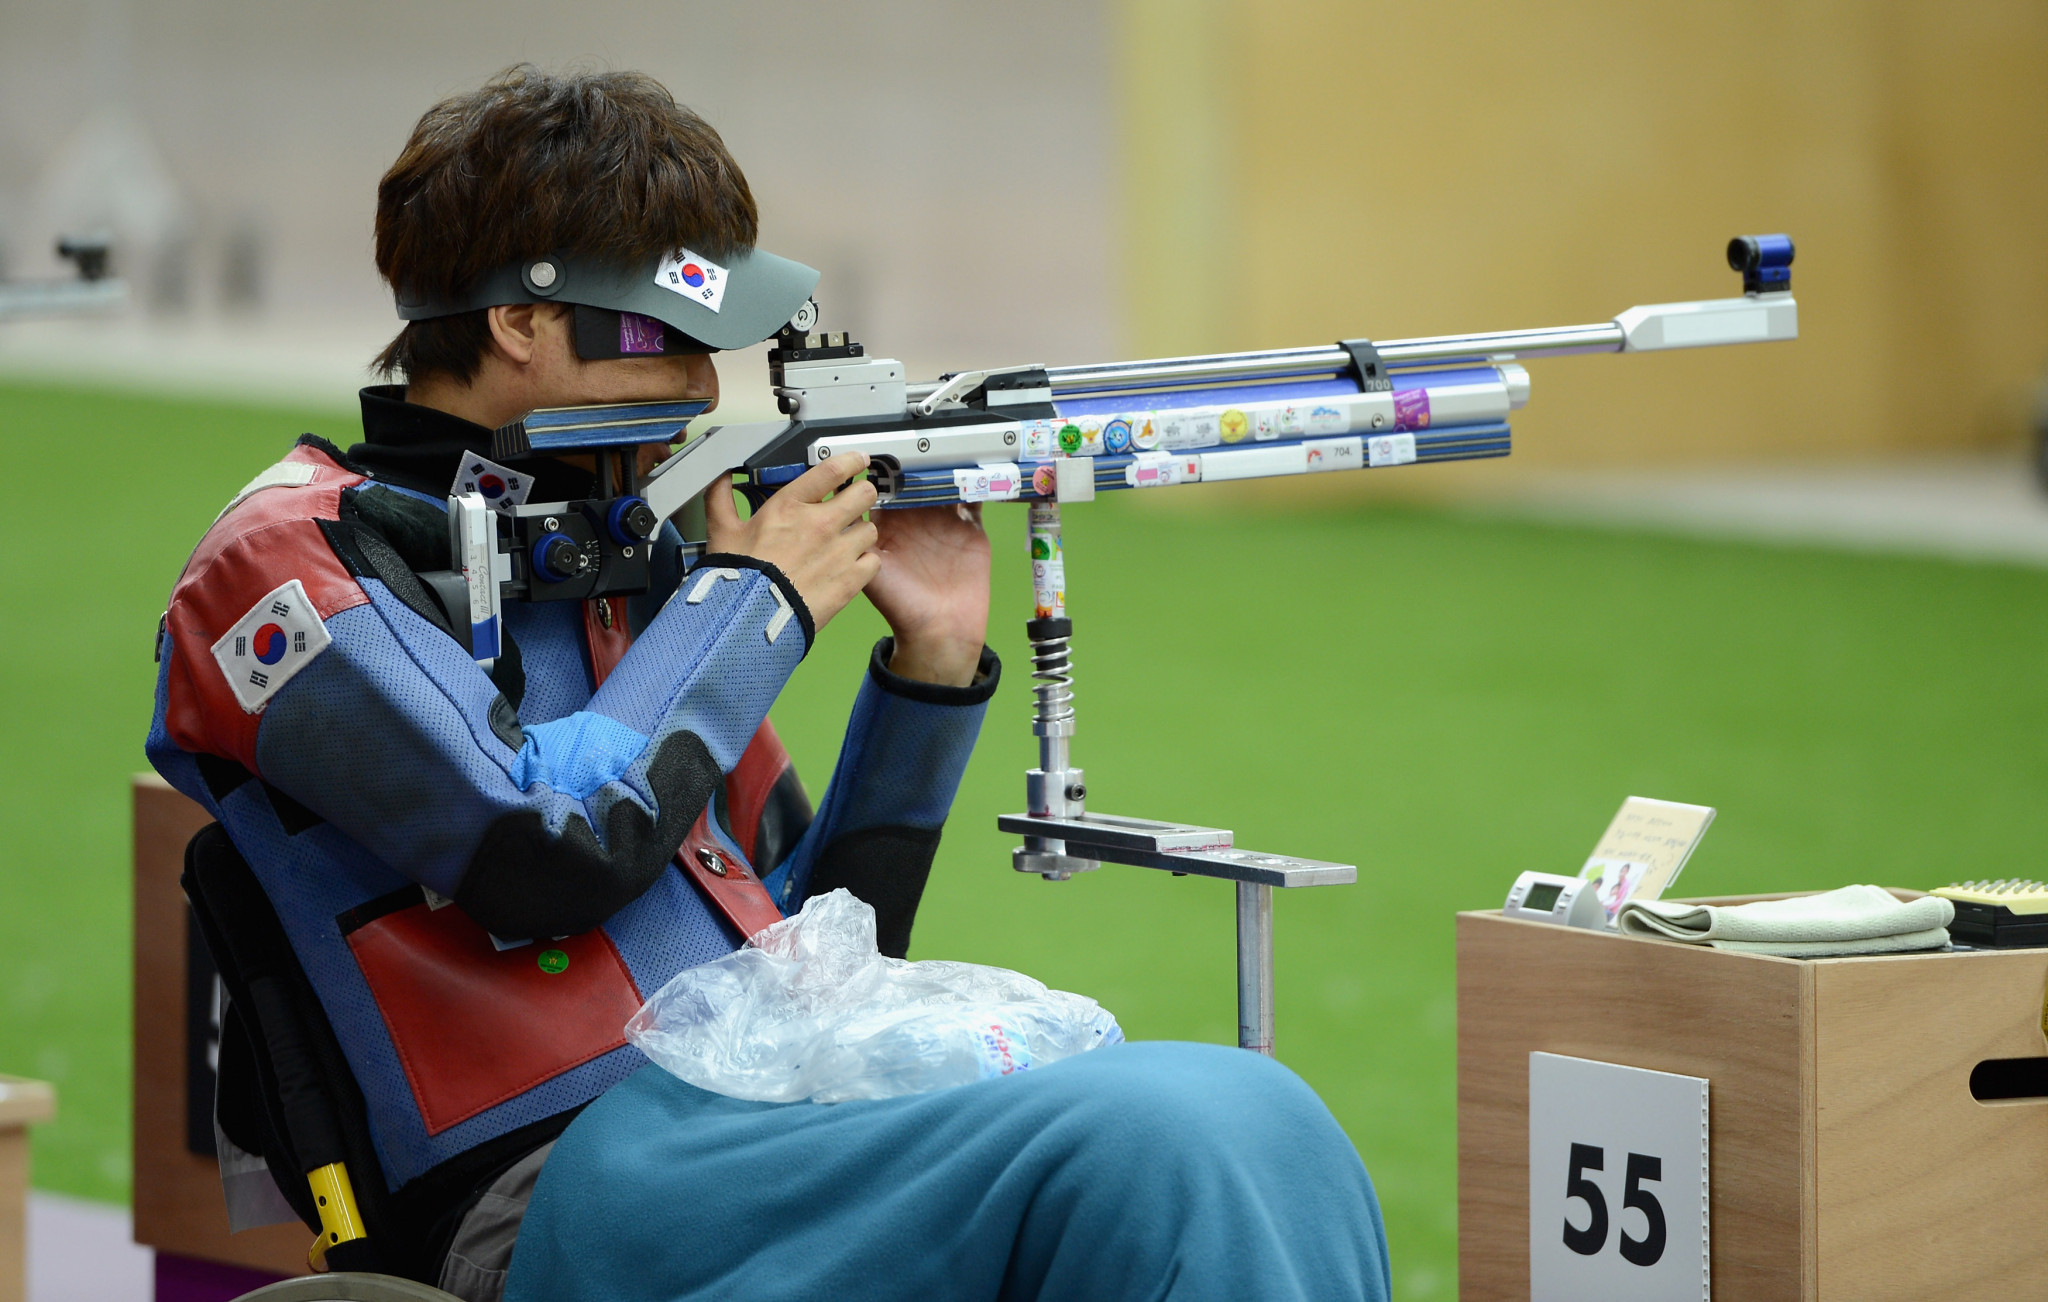 South Korea's Lee wins R4 gold at World Shooting Para Sport World Cup in Osijek